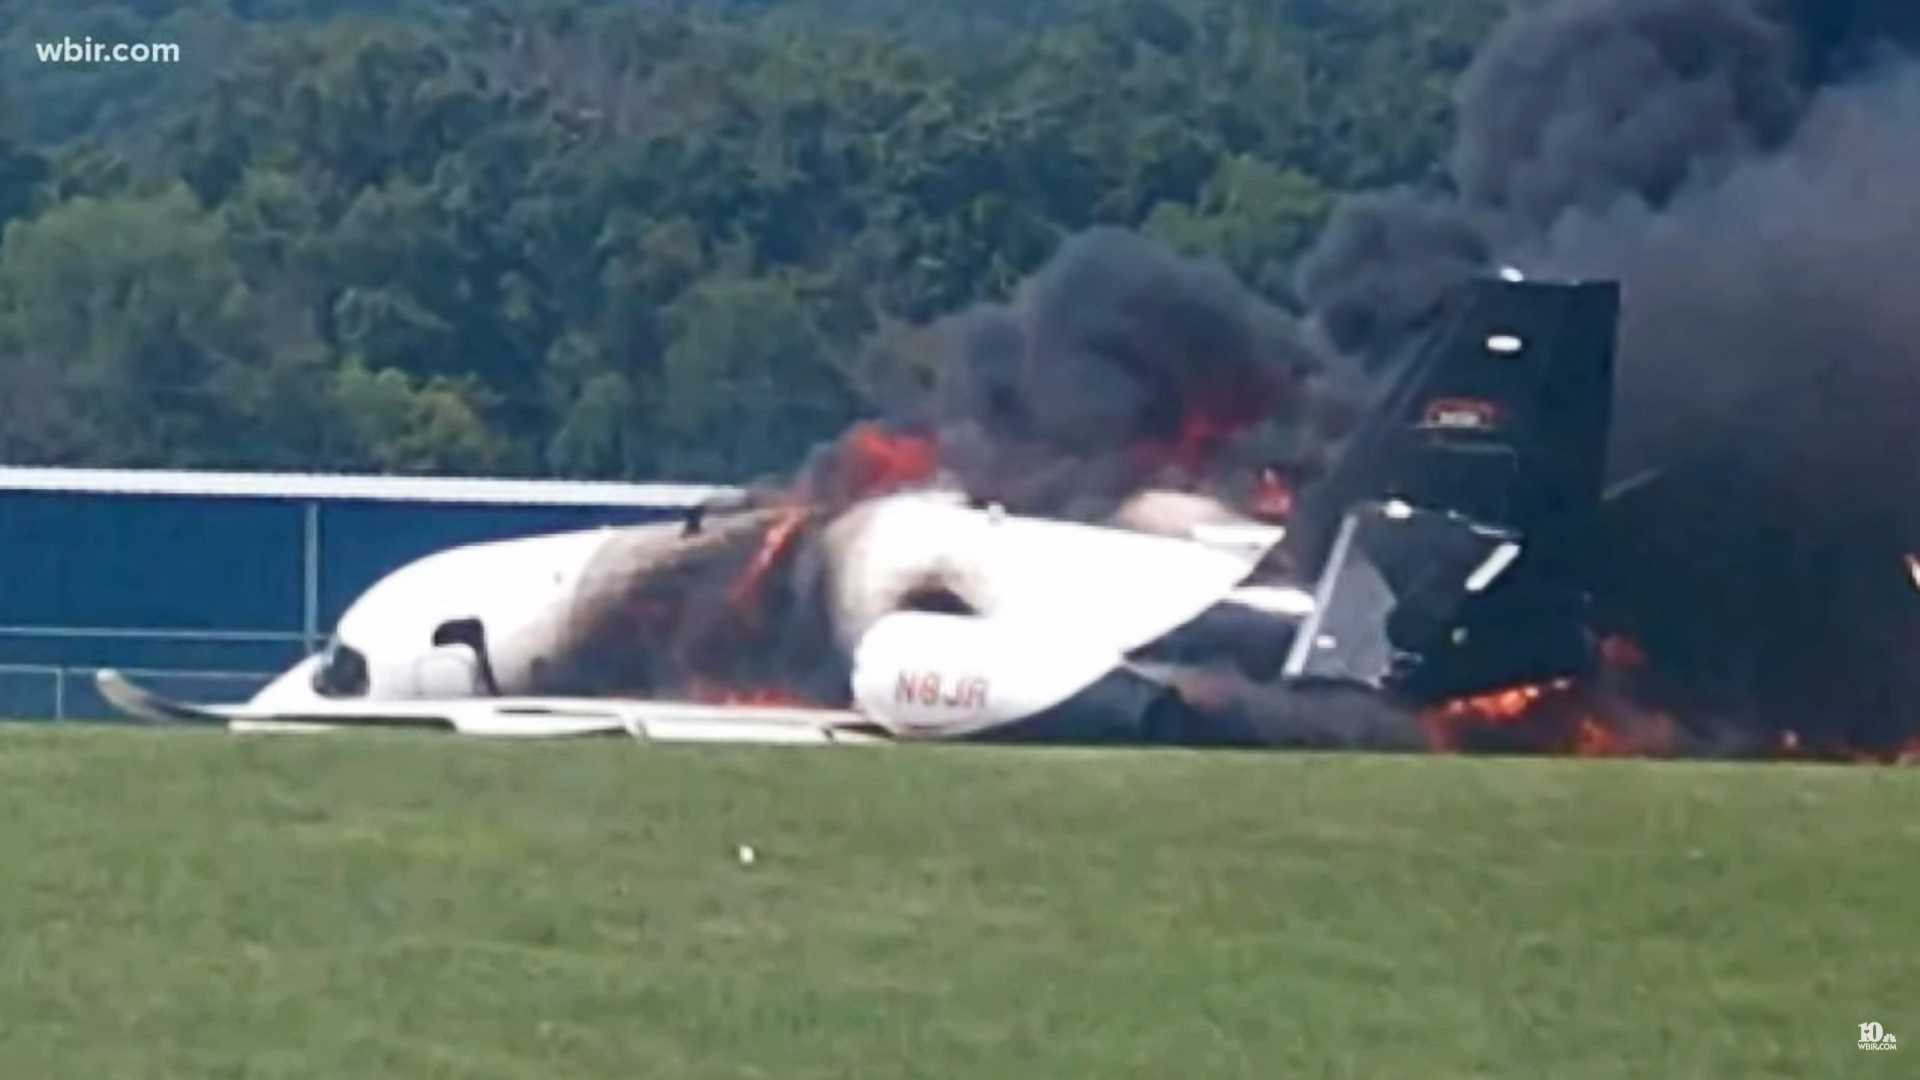 Dale Earnhardt Jr 's Plane Slid Off A Runway And Crashed In Tennessee